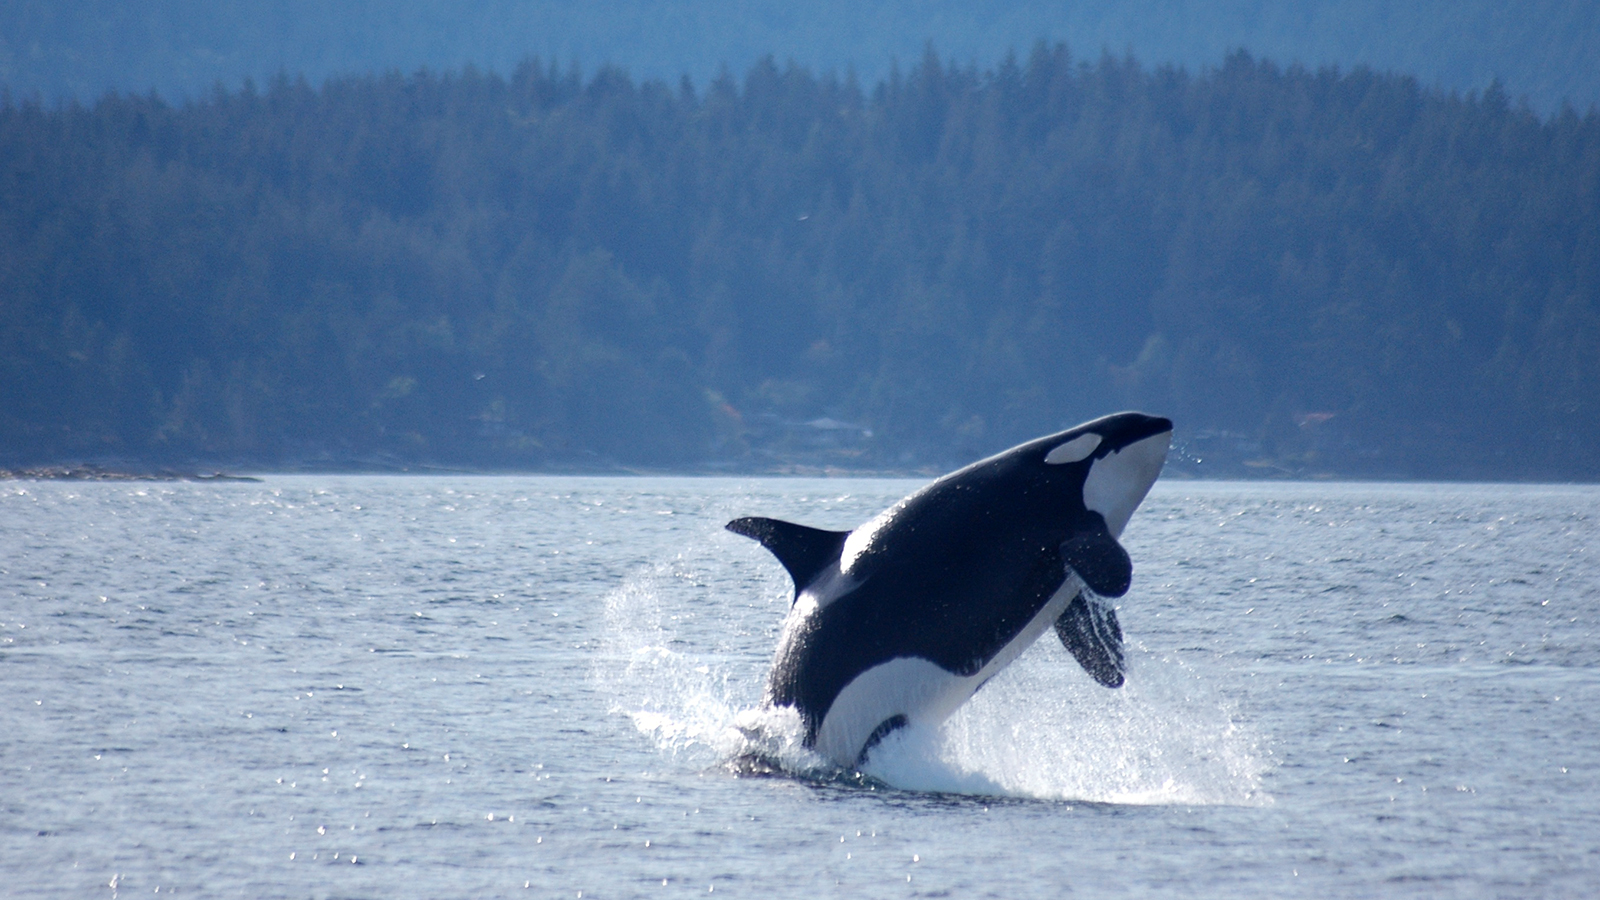 Amazing Orca Pictures & Backgrounds